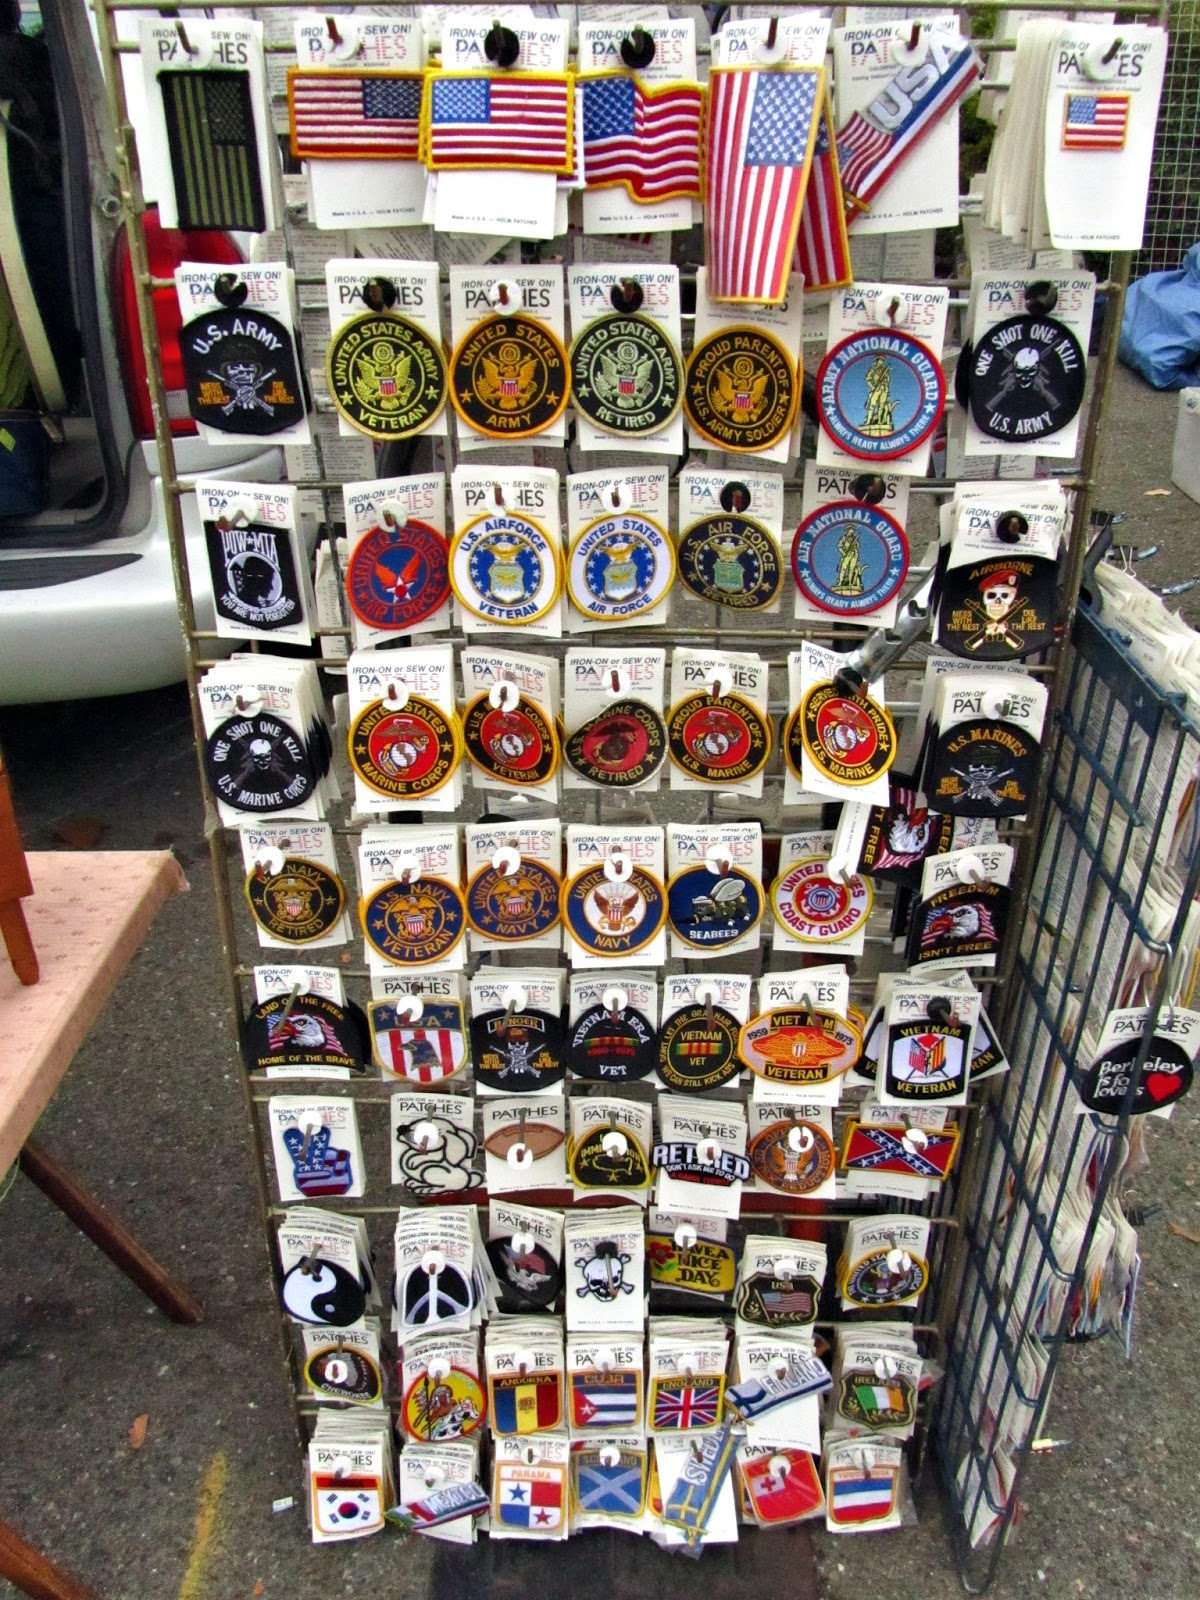 Beans and I on the Loose: Flea Market - Patches, Hats and Cards